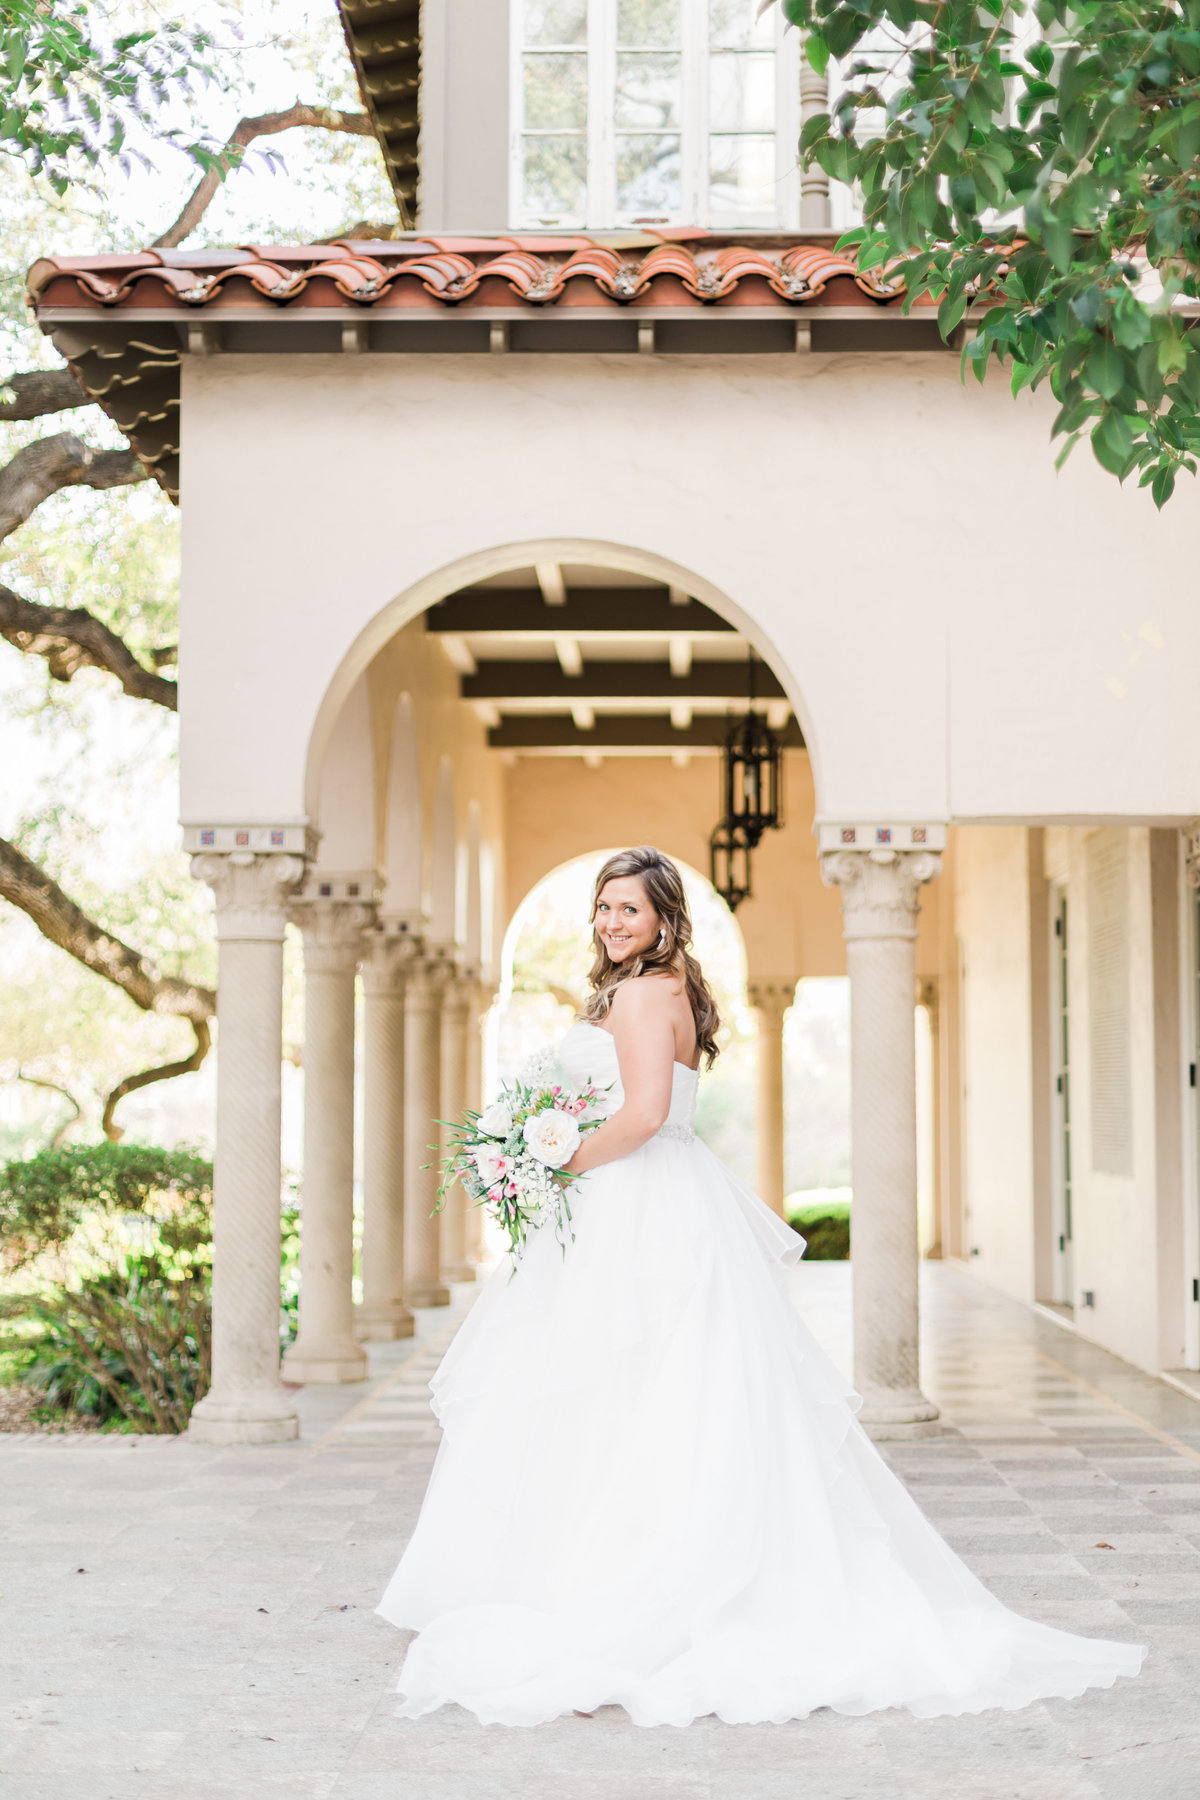 A Bridal Session at Landa Library Wedding Photos by Allison Jeffers Wedding Photography_San Antonio Wedding Photographer_